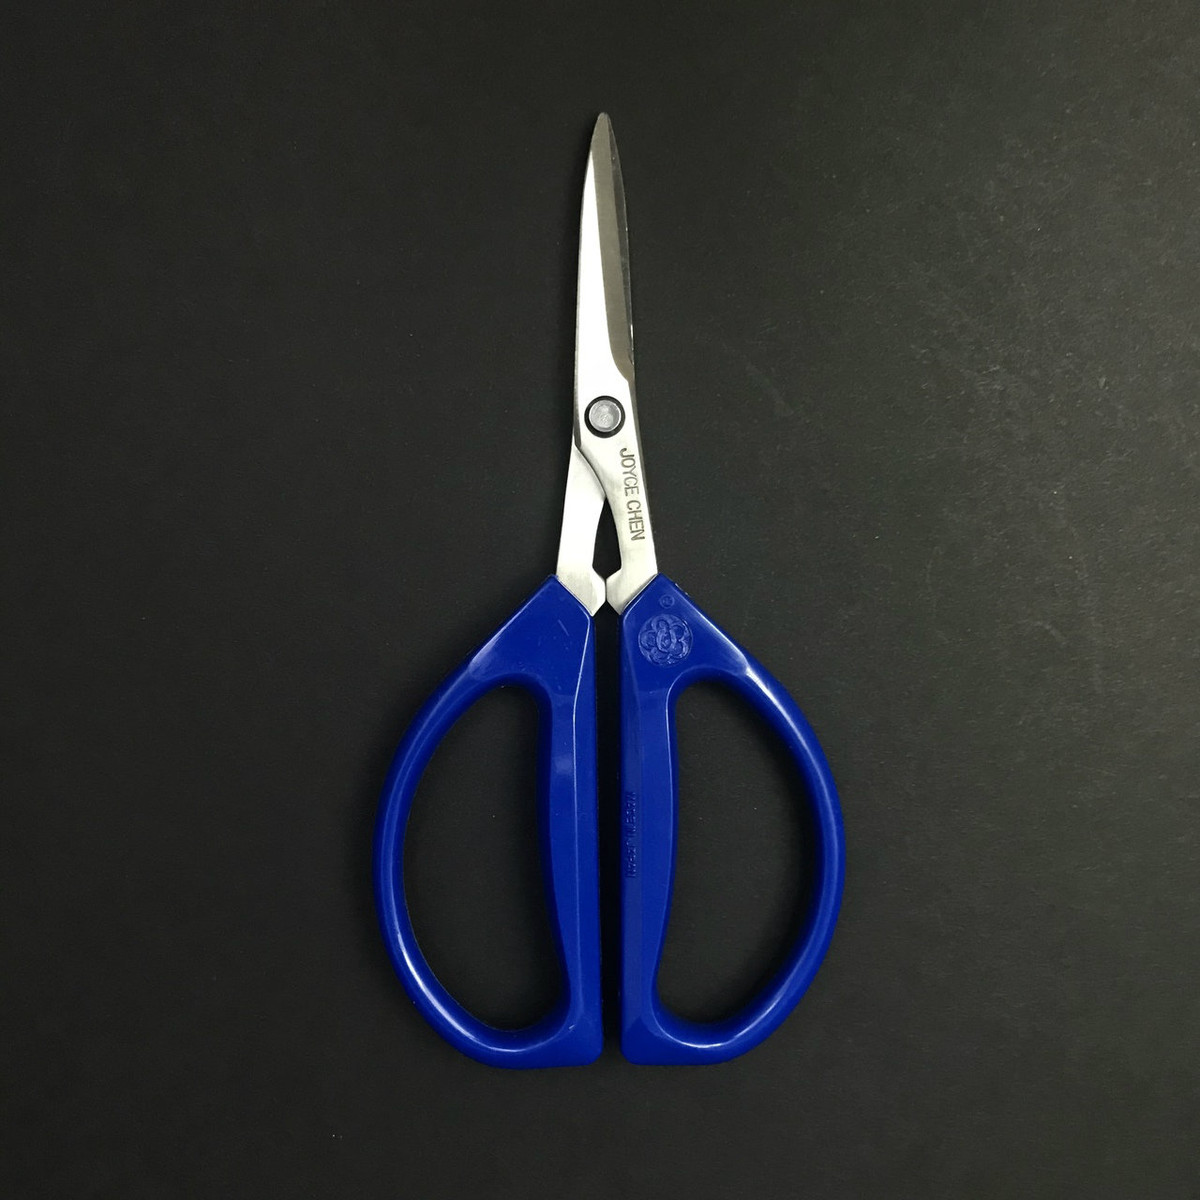 Joyce Chen - Scissors - Blue